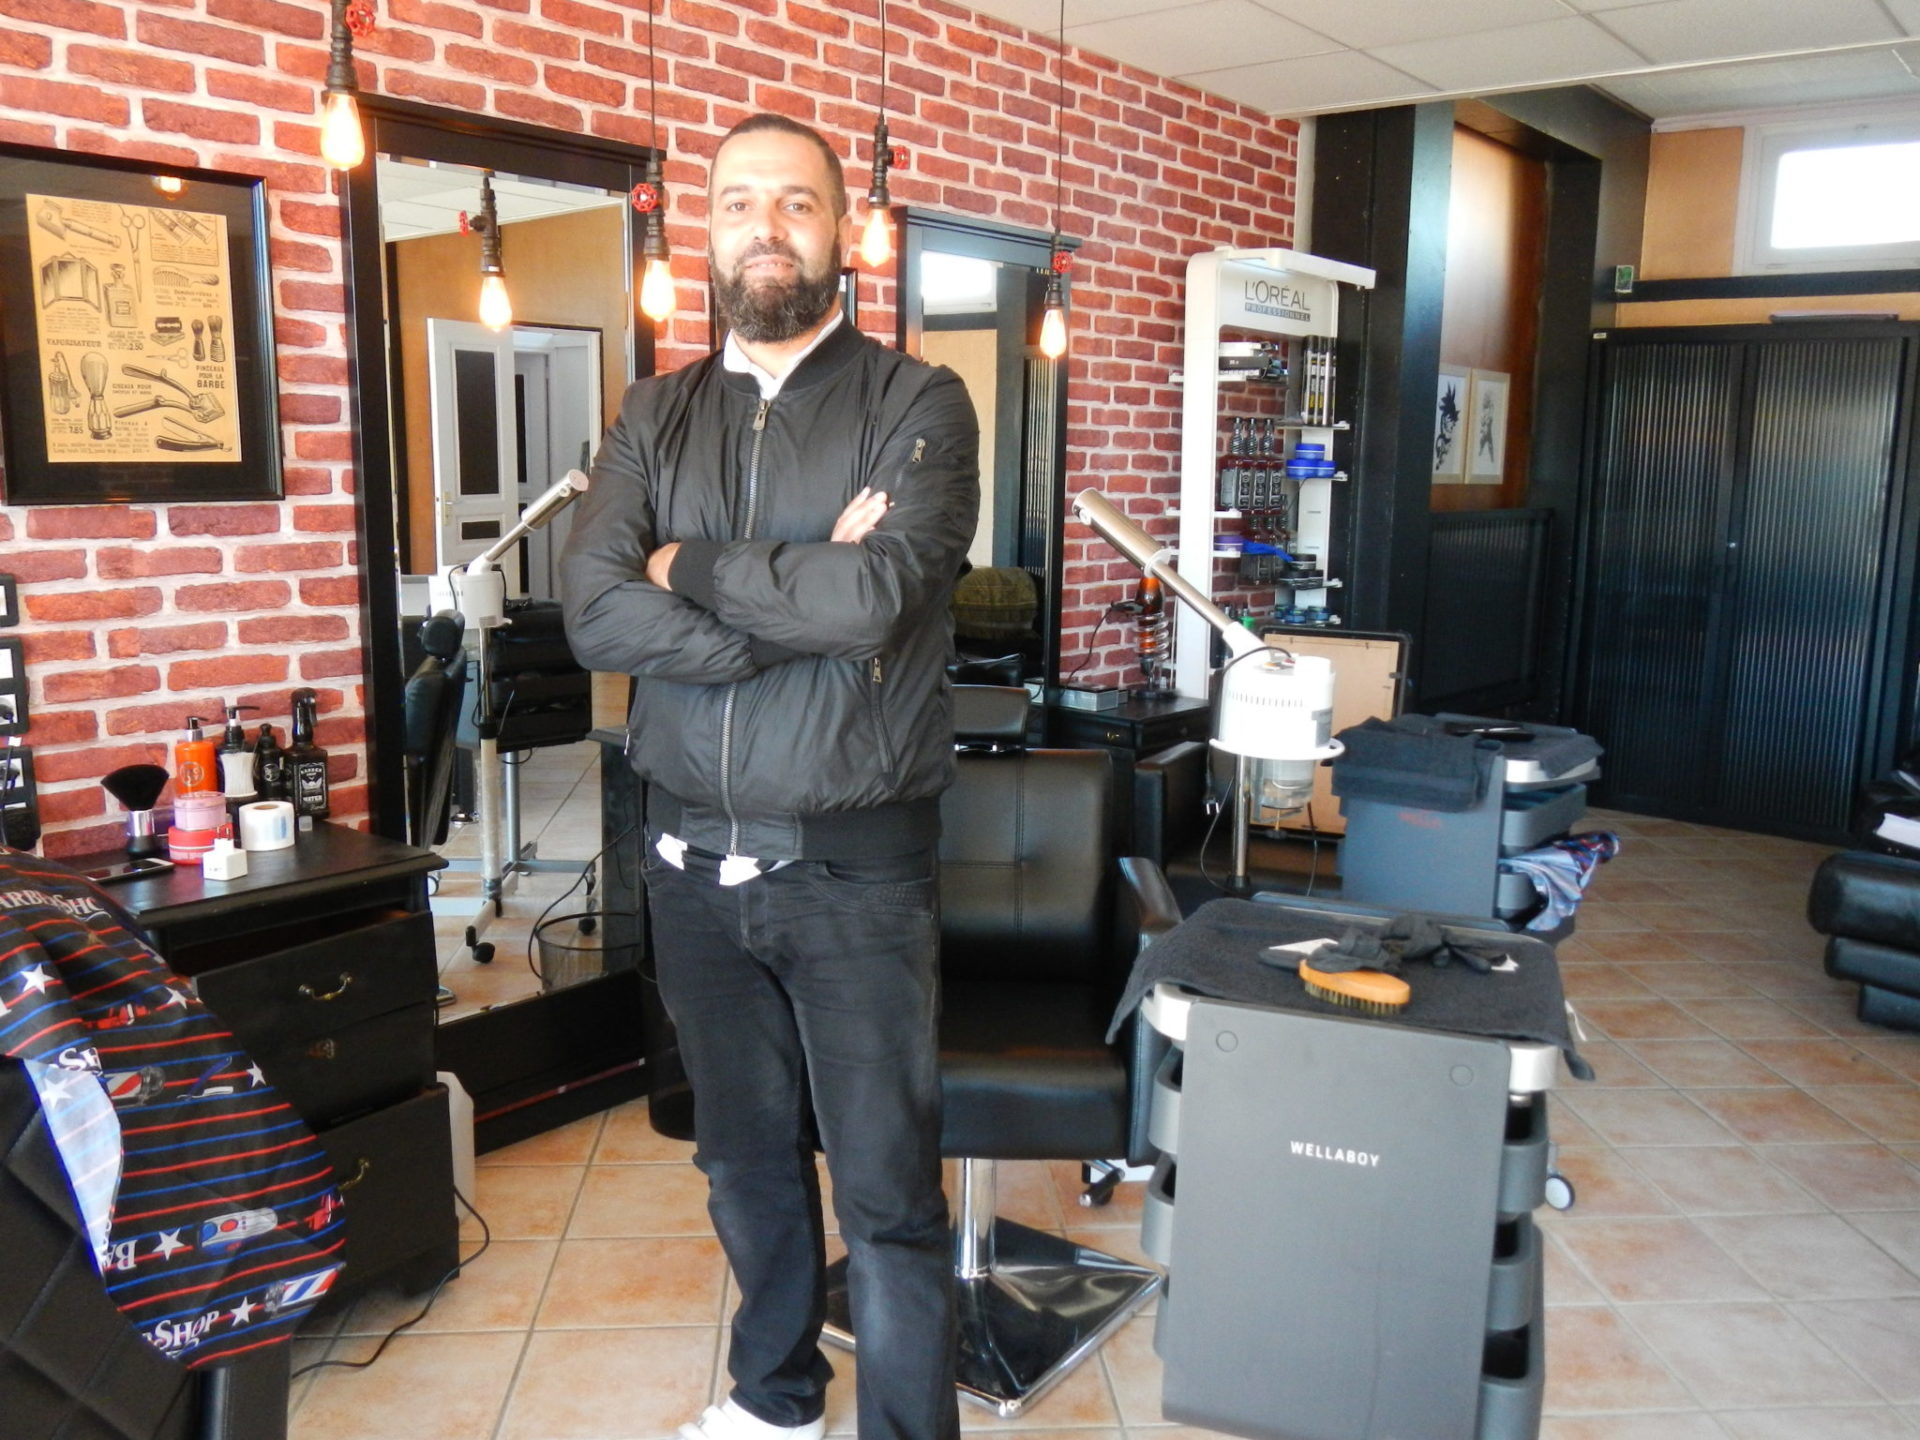 The Barber club ou l'envie de s'investir